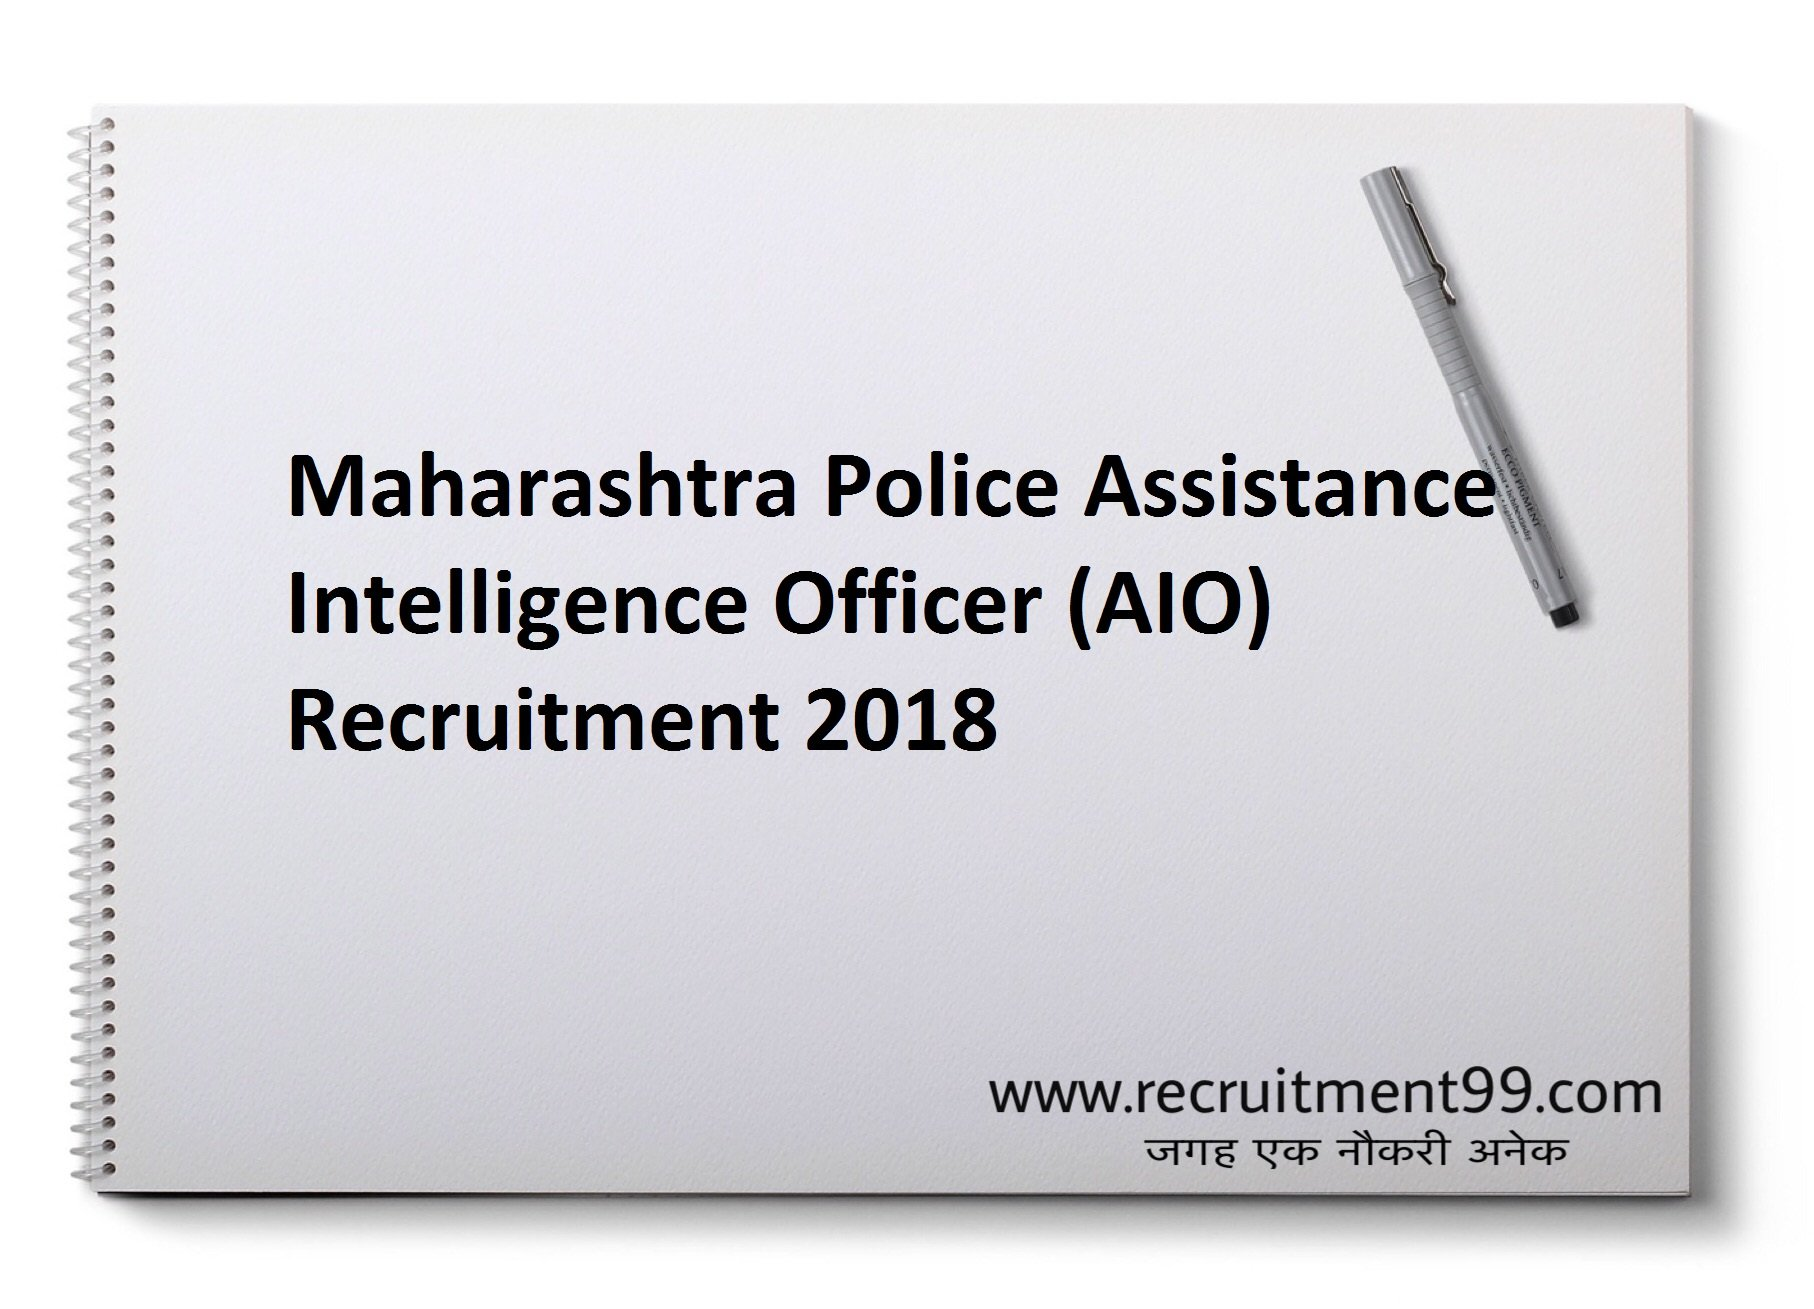 Maharashtra Police Assistance Intelligence Officer (AIO) Recruitment Hall Ticket Result 2018